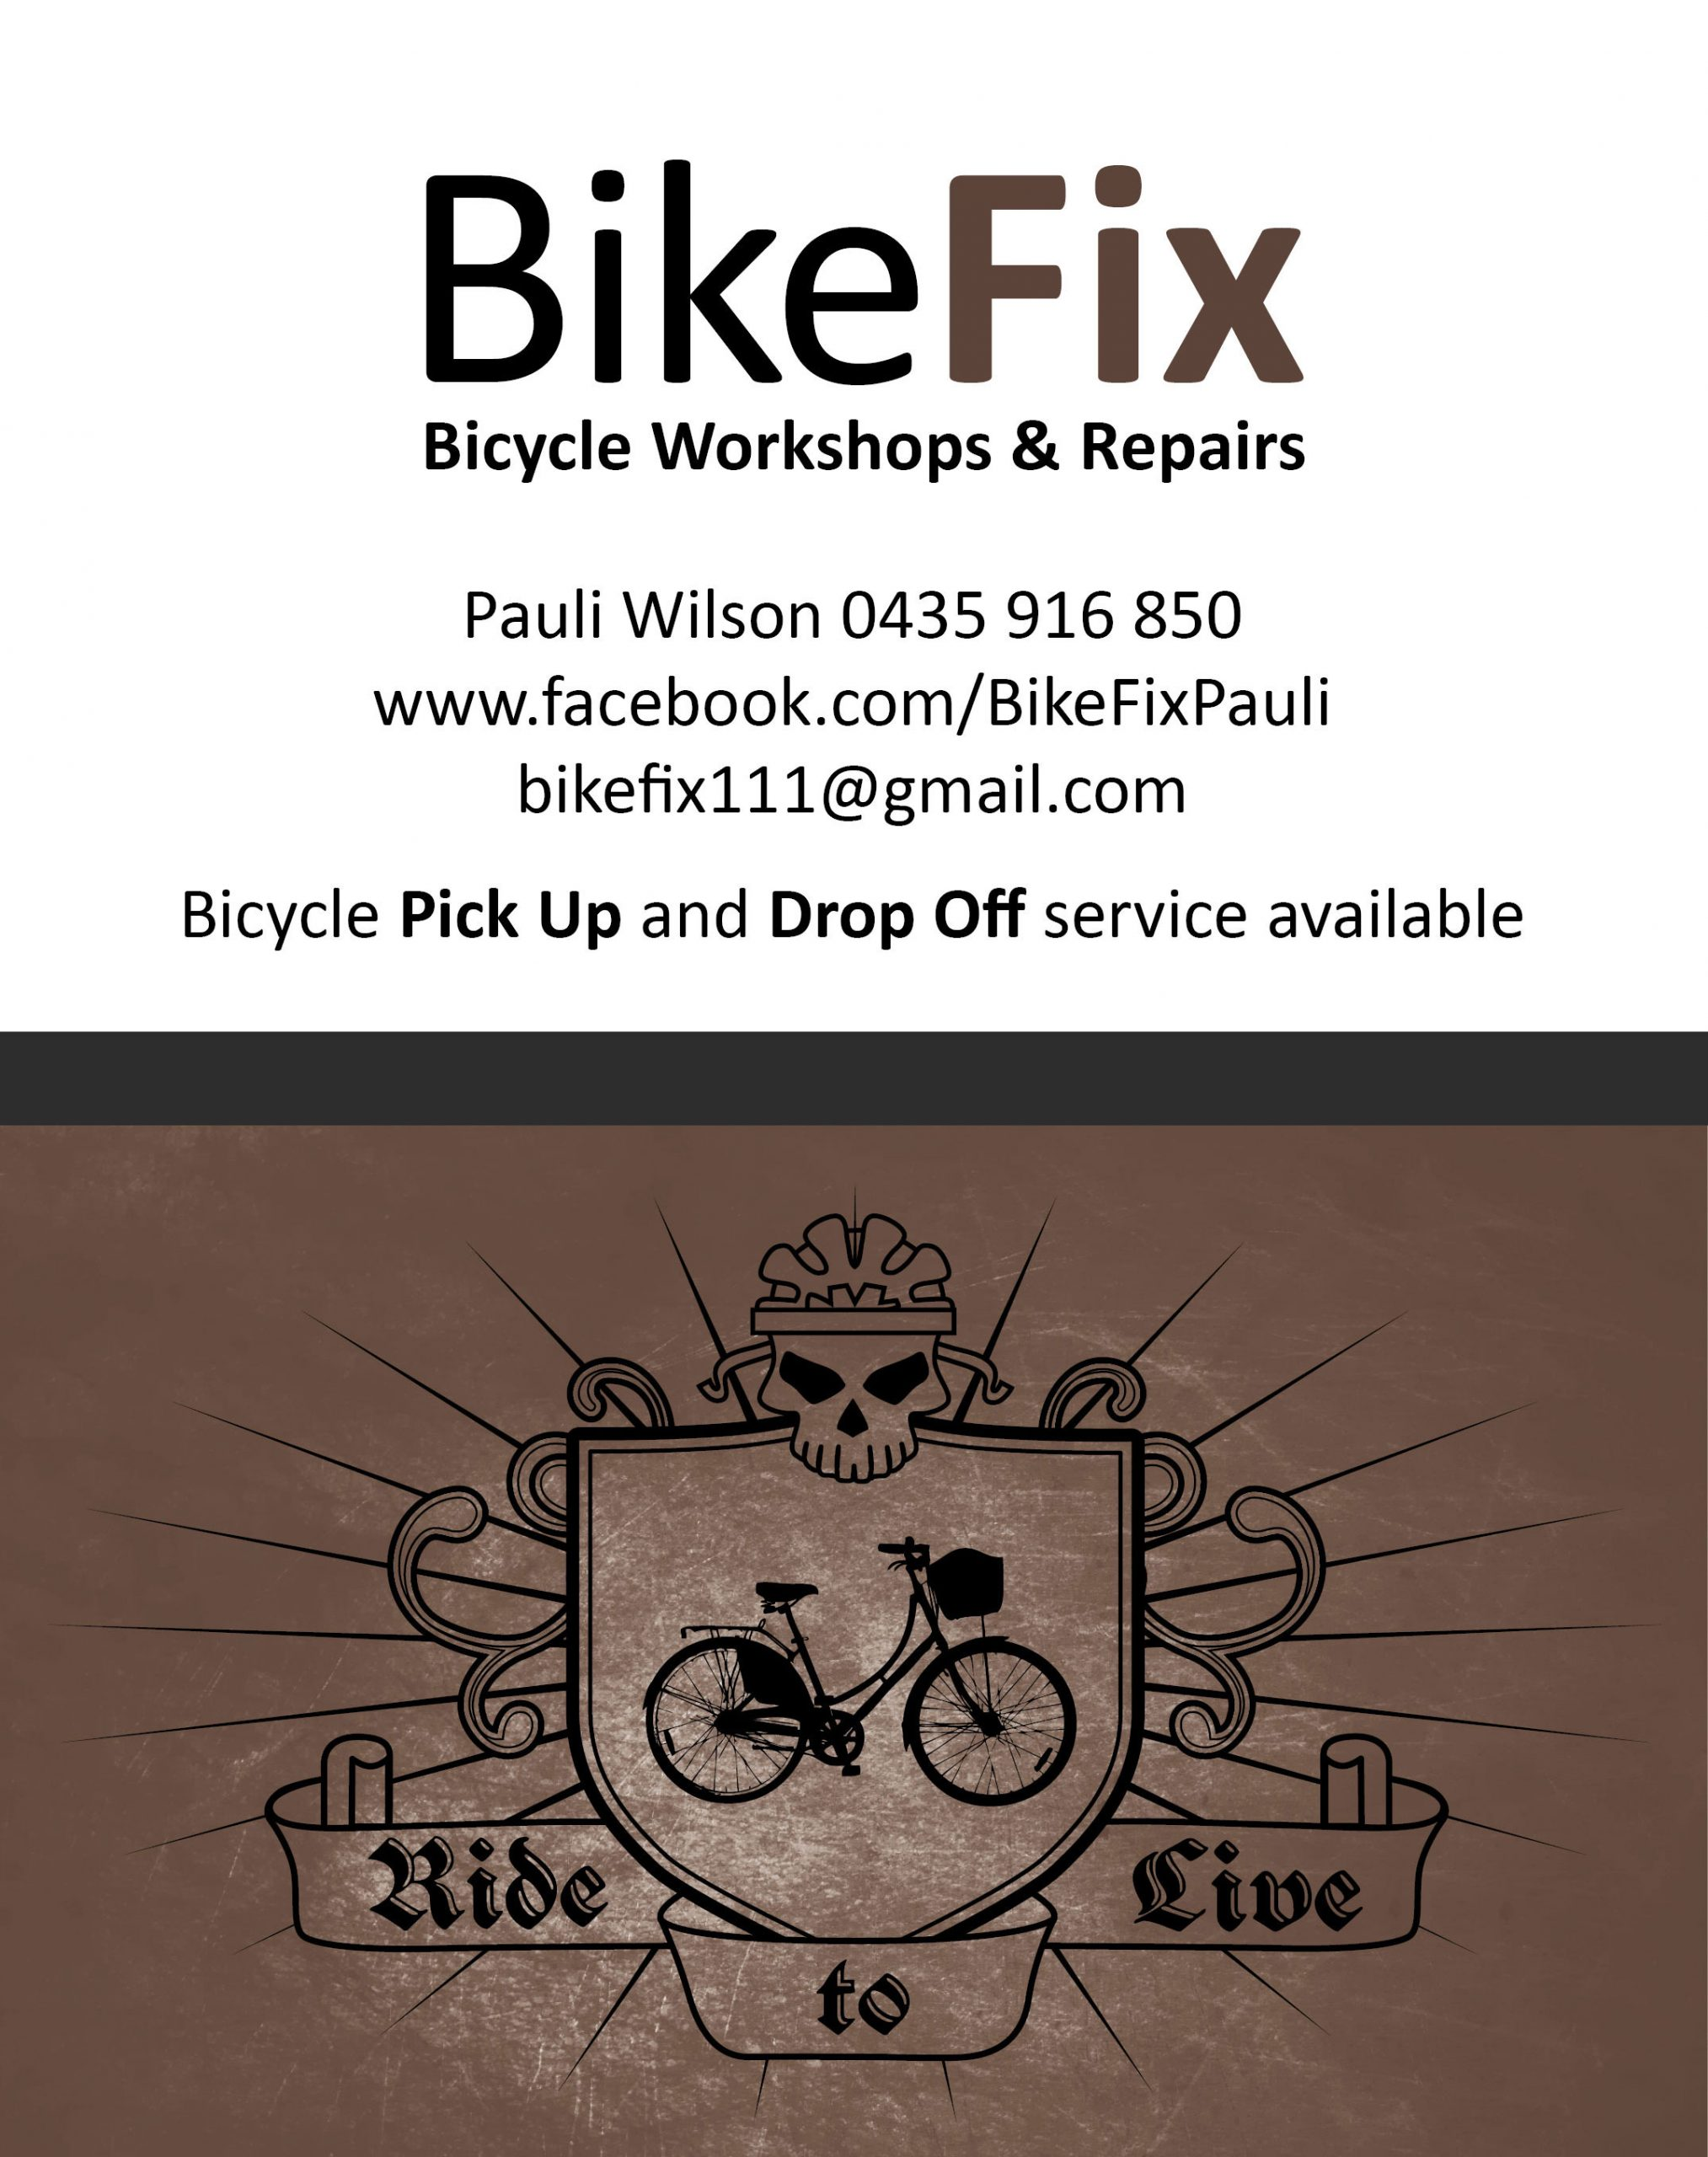 Bike Fix business card designed by Karen Batten – Create Together ...